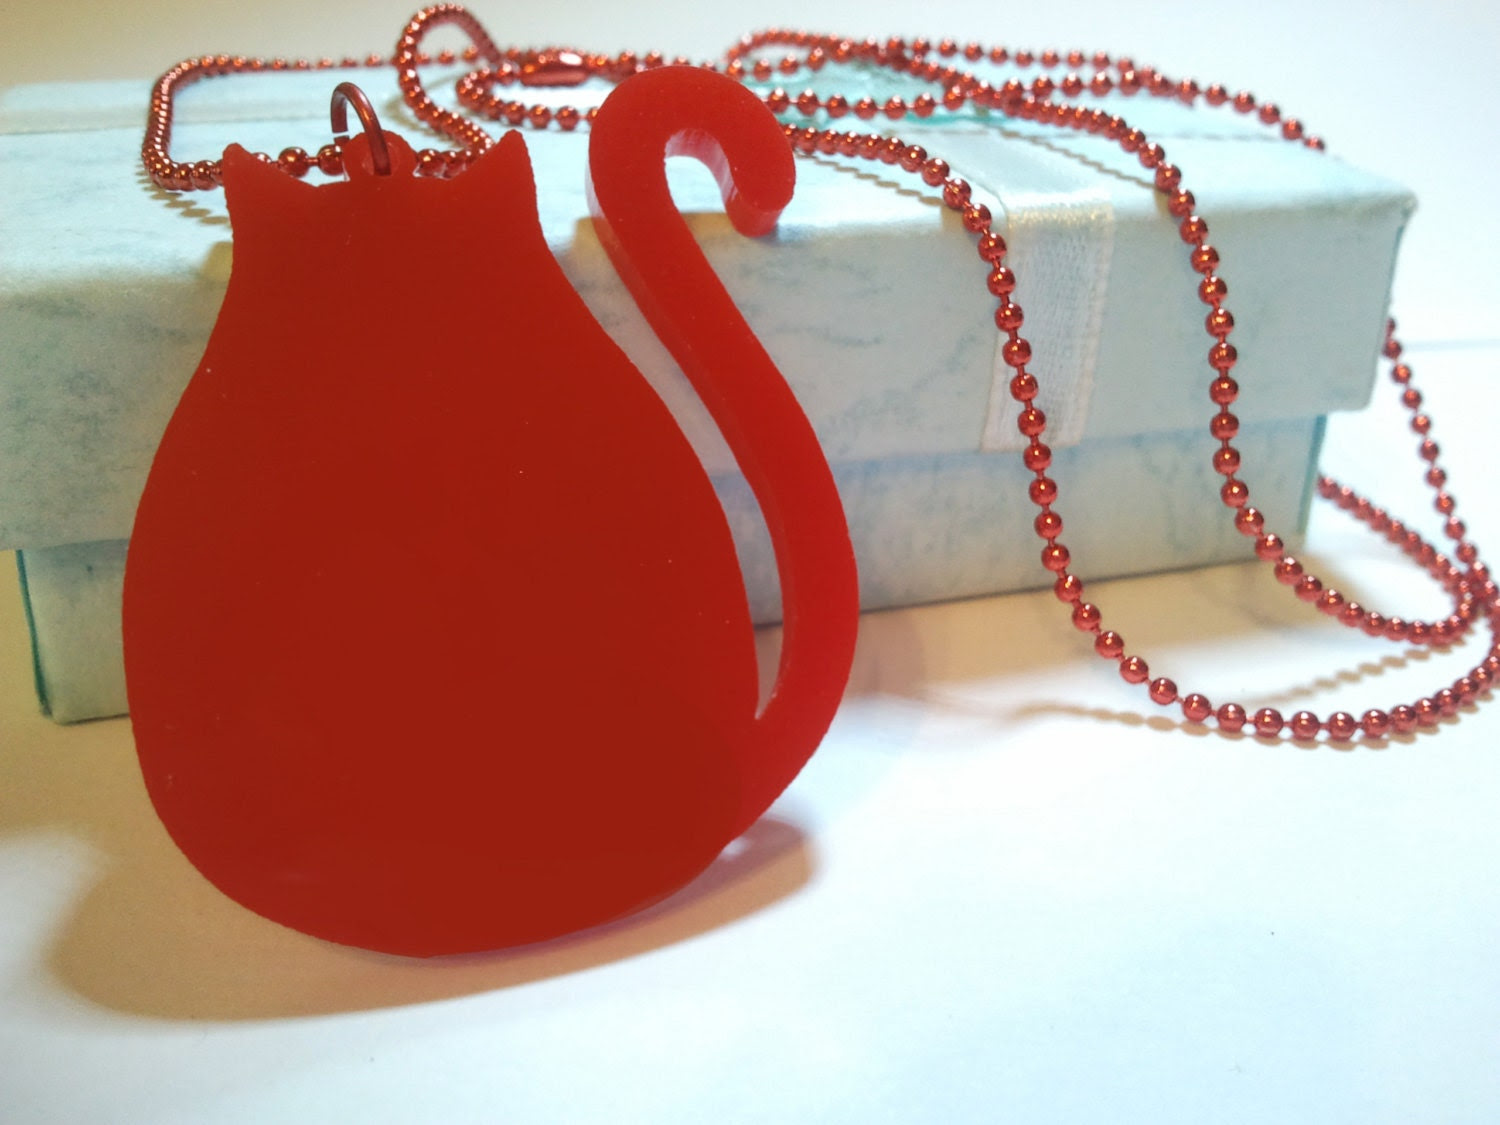 Original Acrylic Plastic Red Cat charm pendant Cool Emo Kawaii ball chain necklace Israel made - waterdewsf